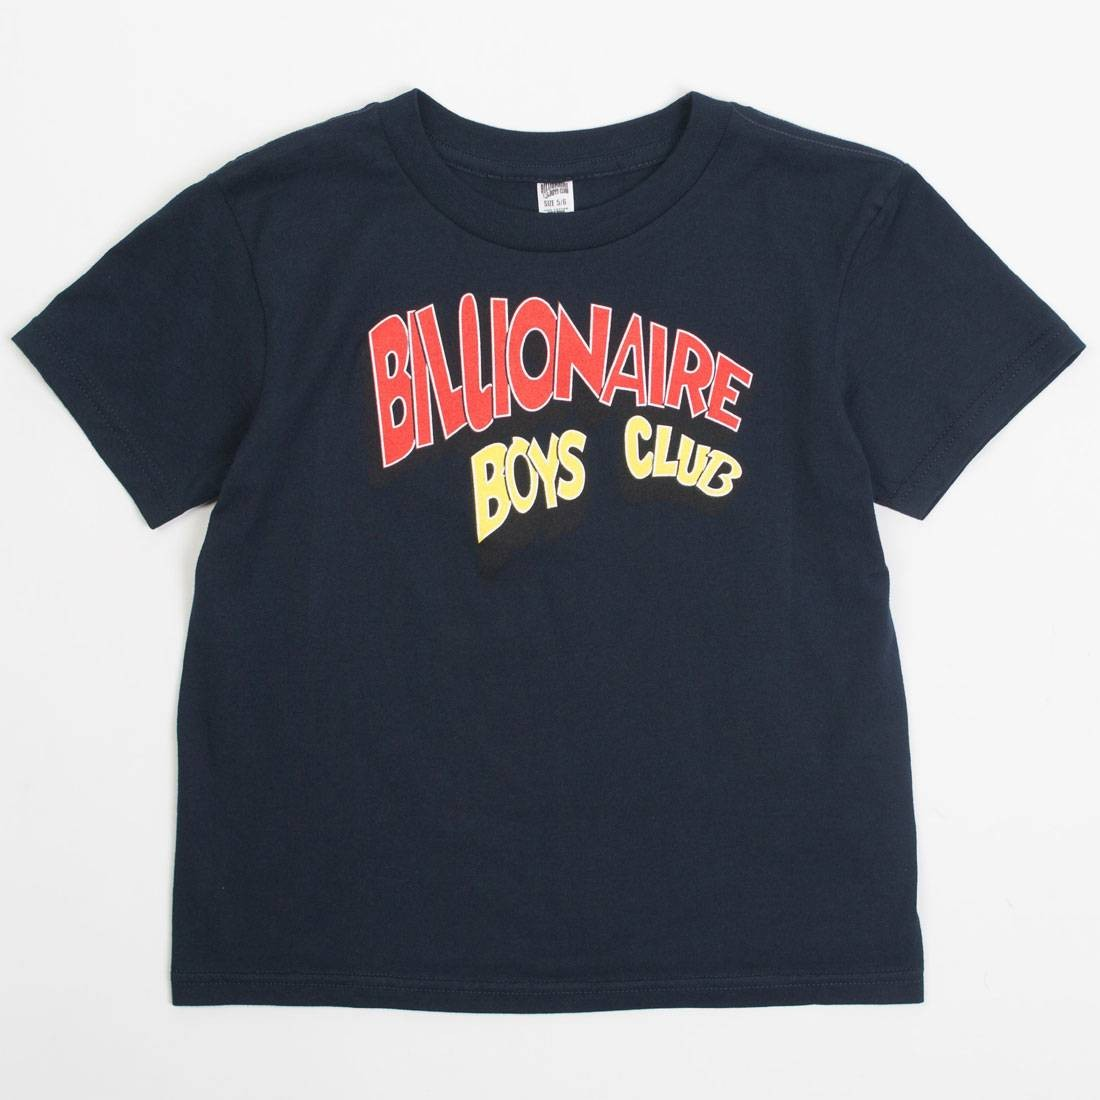 Billionaire Boys Club Youth Toons Tee (navy)